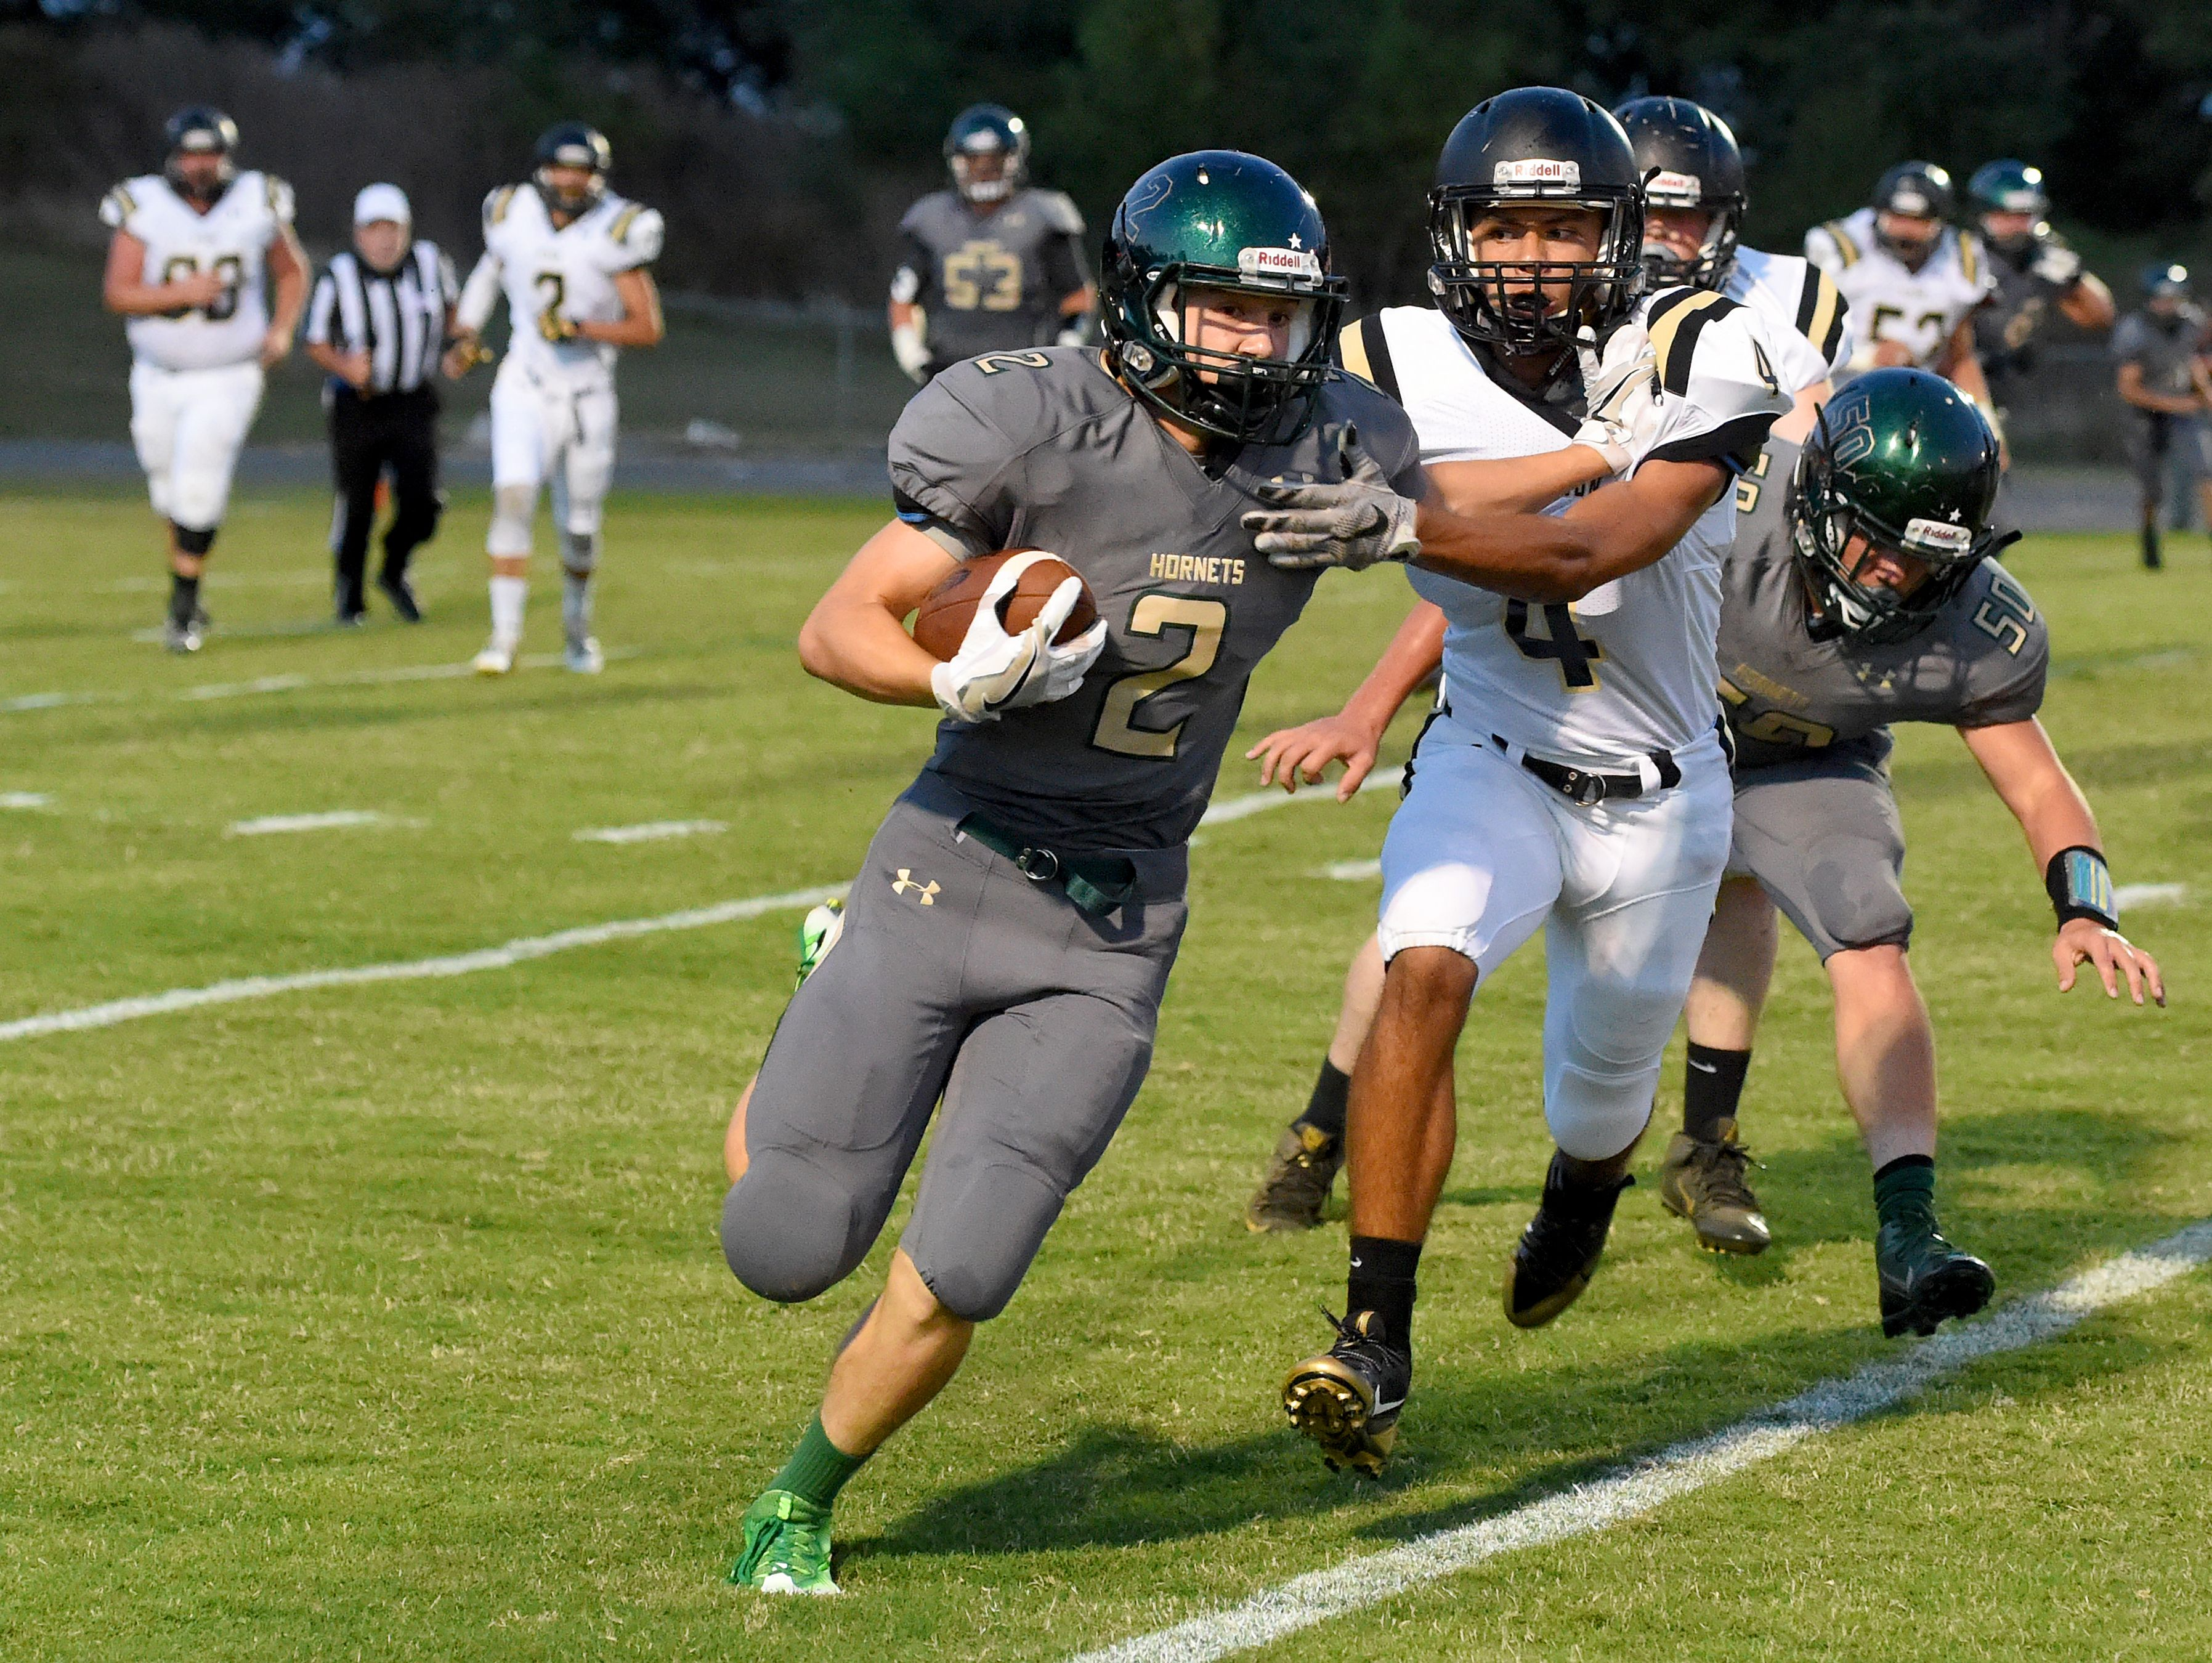 Carrying the football, Wilson Memorial's Colton Tyree pushes off against Buffalo Gap's Jay Johnson who goes for the tackle during a football game played in Fishersville on Friday, Sept. 23, 2016.